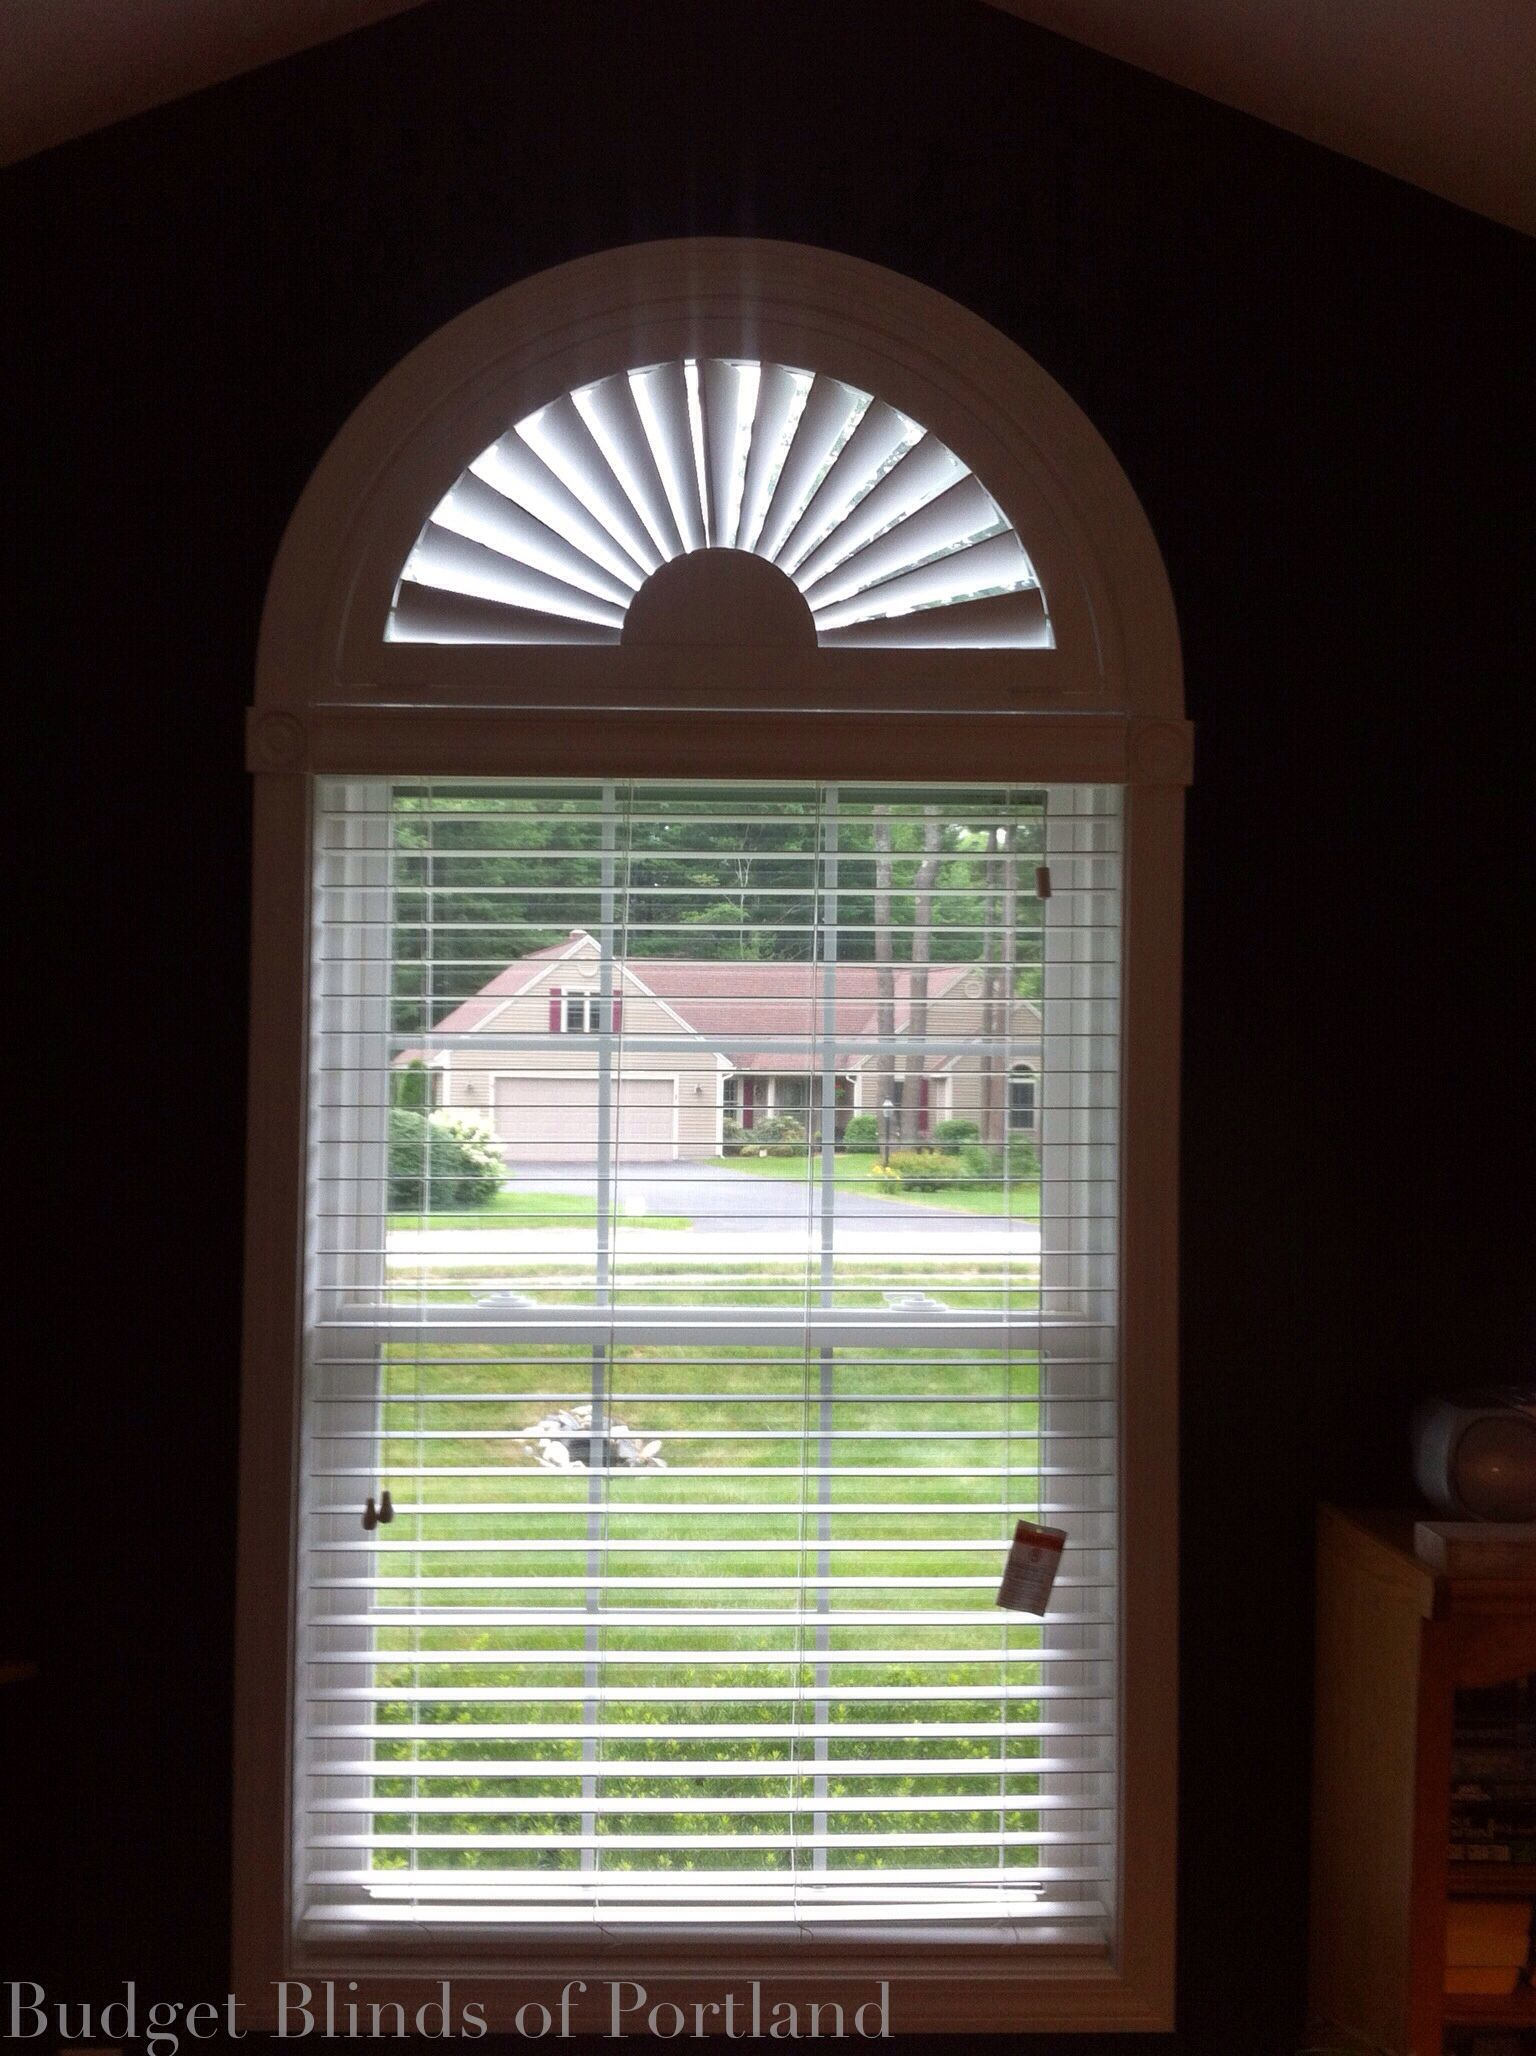 by changing just budget coverings wv martinsburg your window rooms portland places transform blinds view